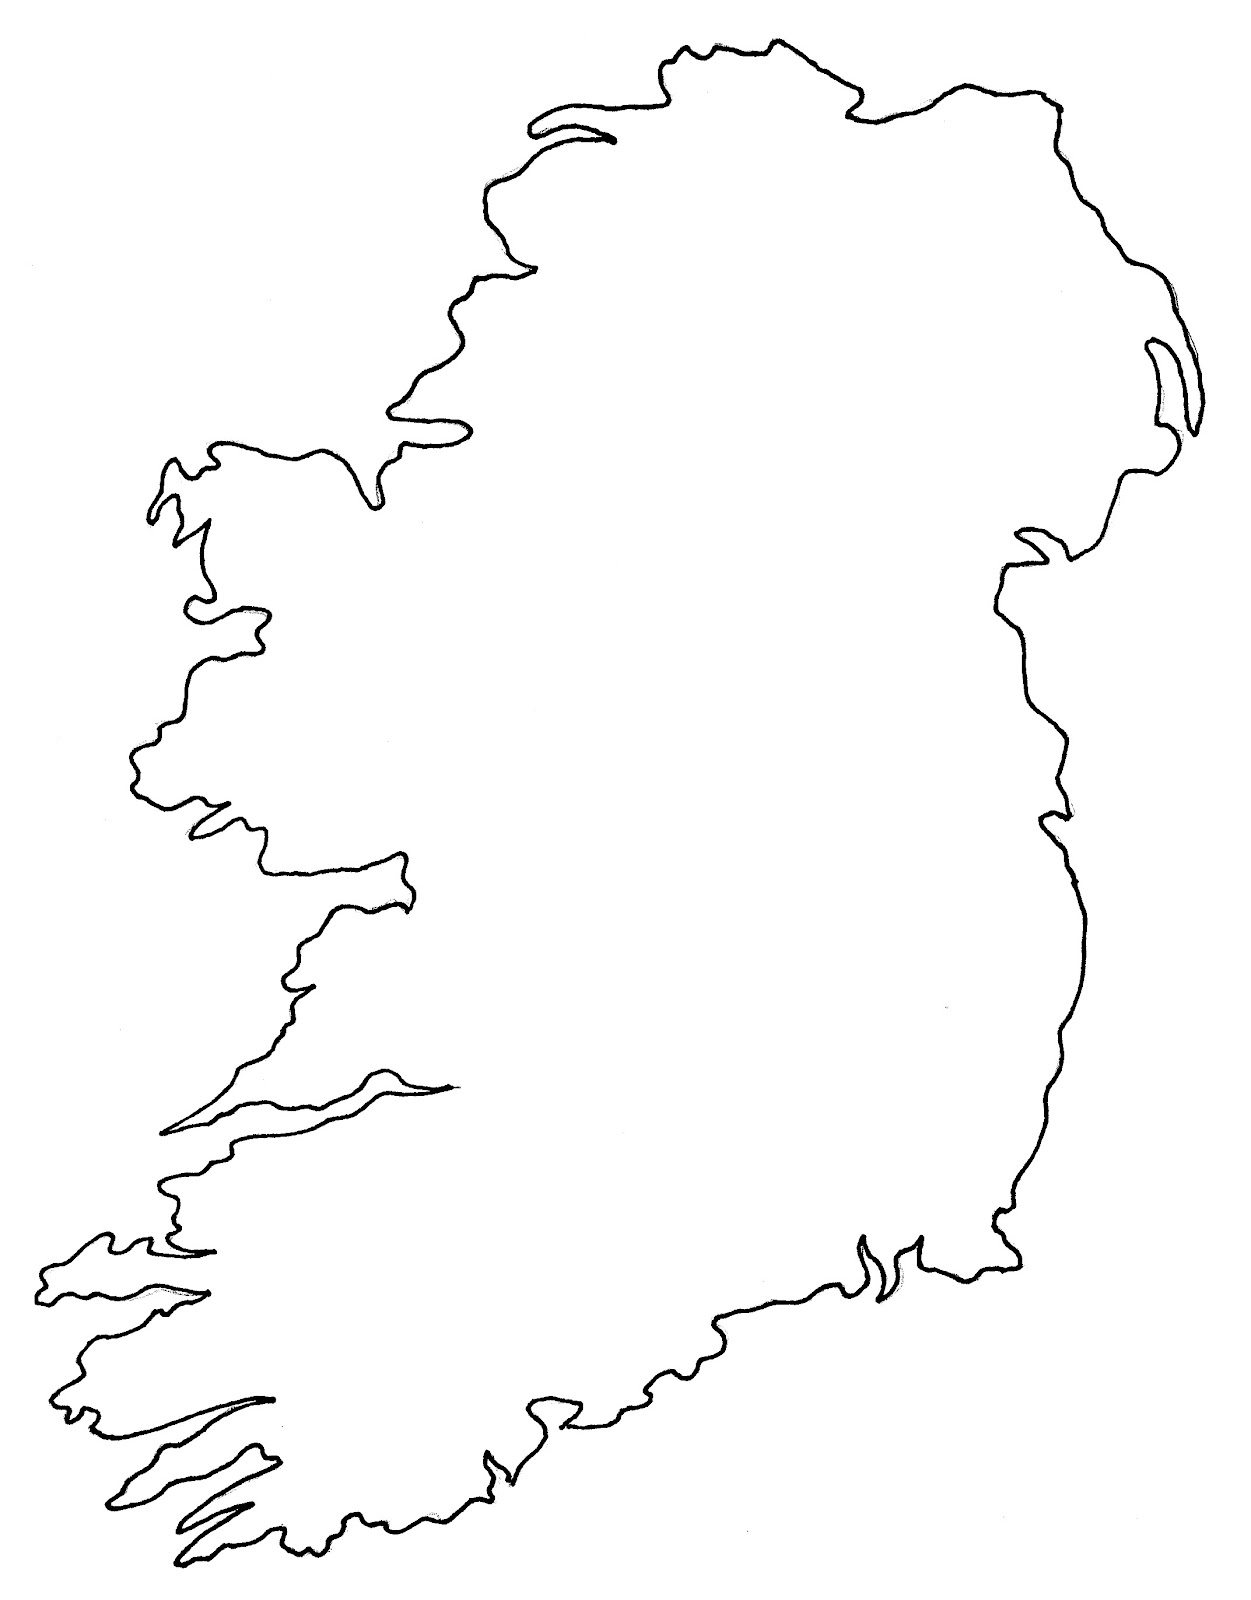 Ireland Blank Map Ireland Map Geography Political City